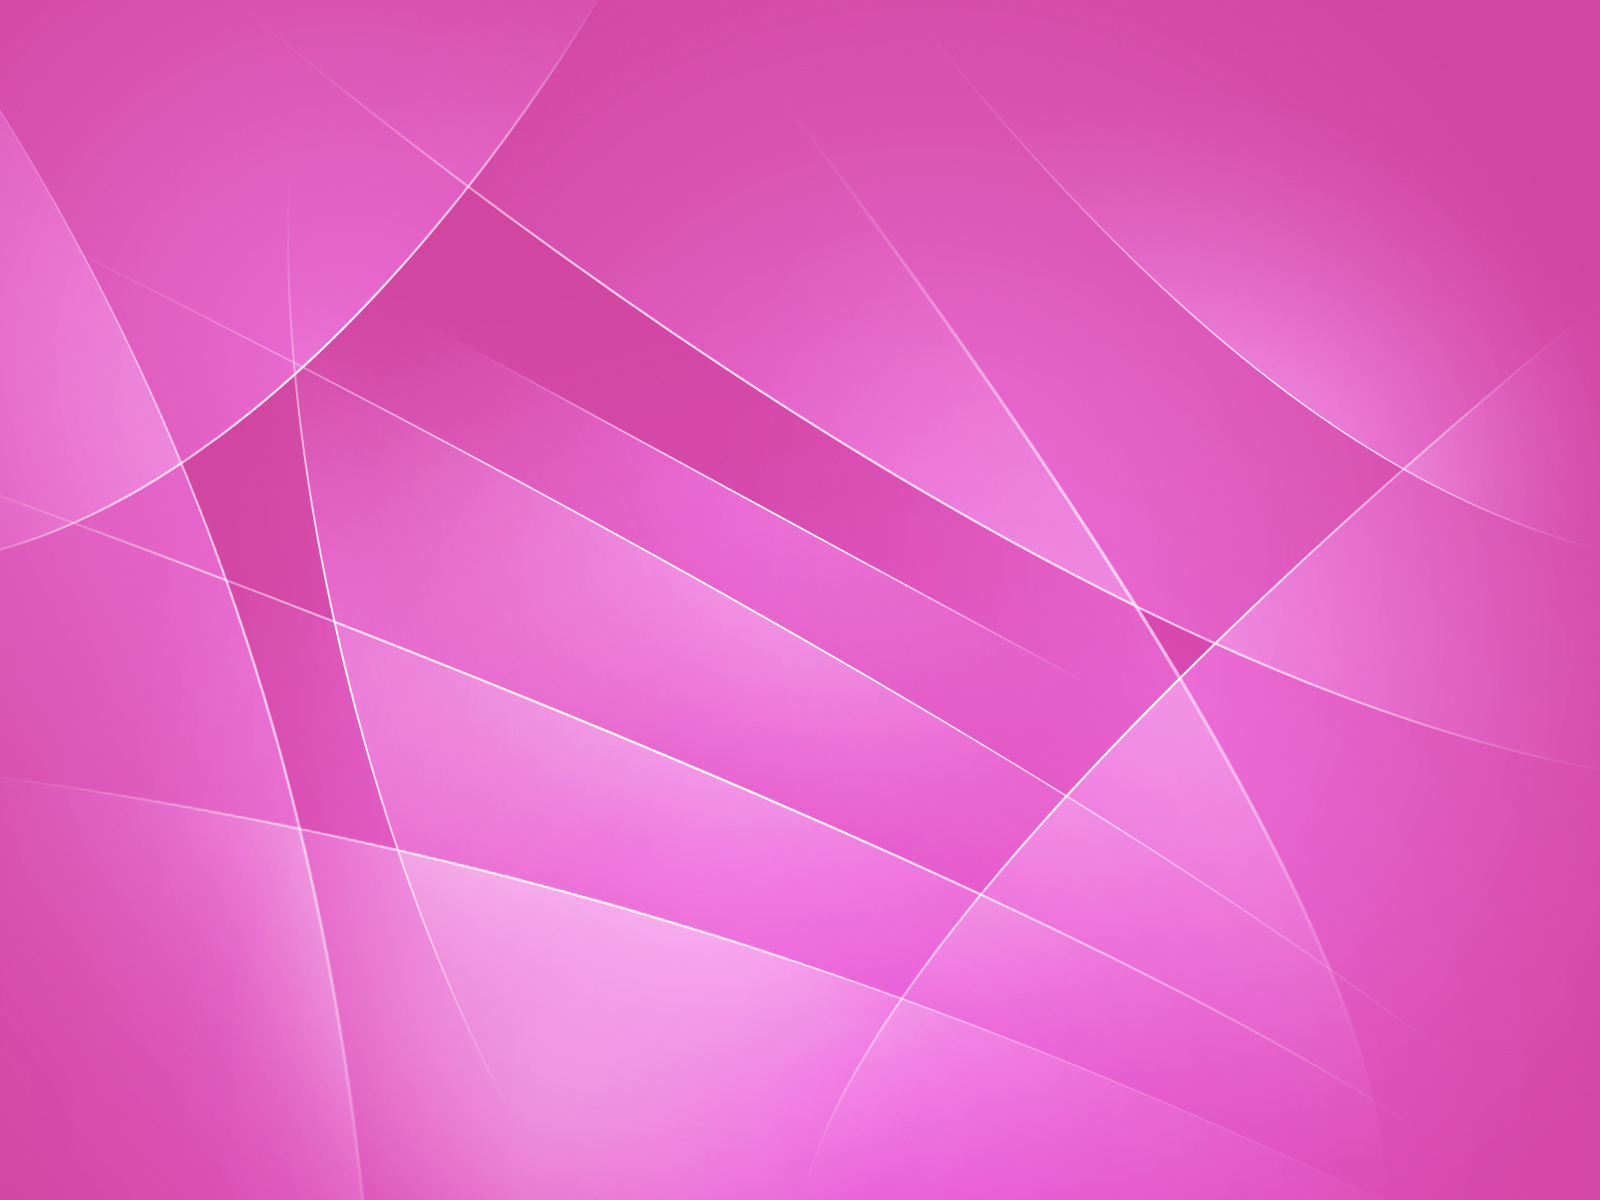 Light Pink Wallpapers HD 1600x1200